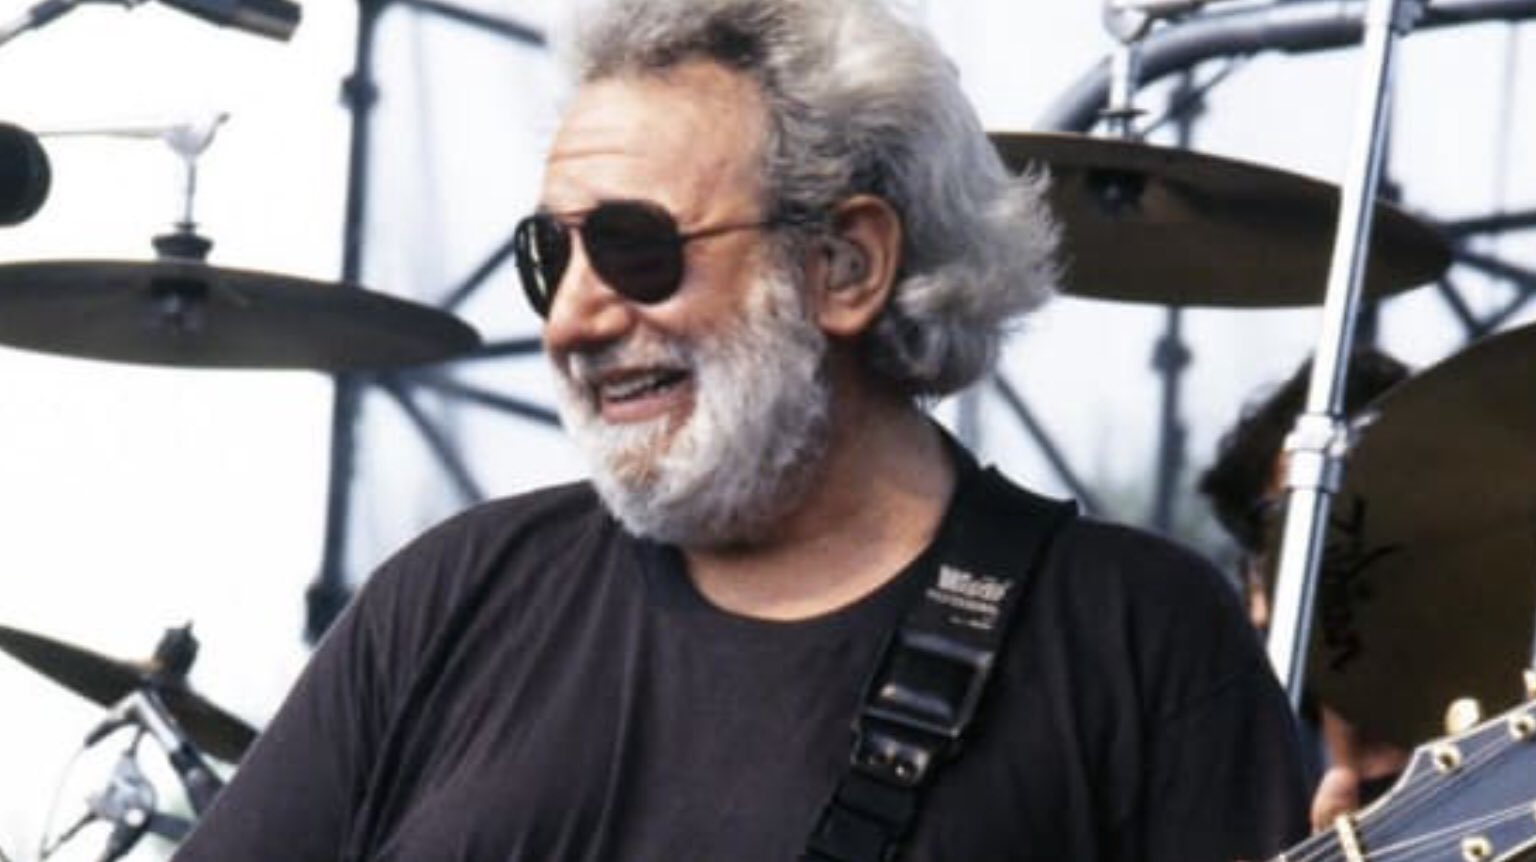 Happy birthday to her from birthday guy Jerry Garcia. Now there s a couple.....